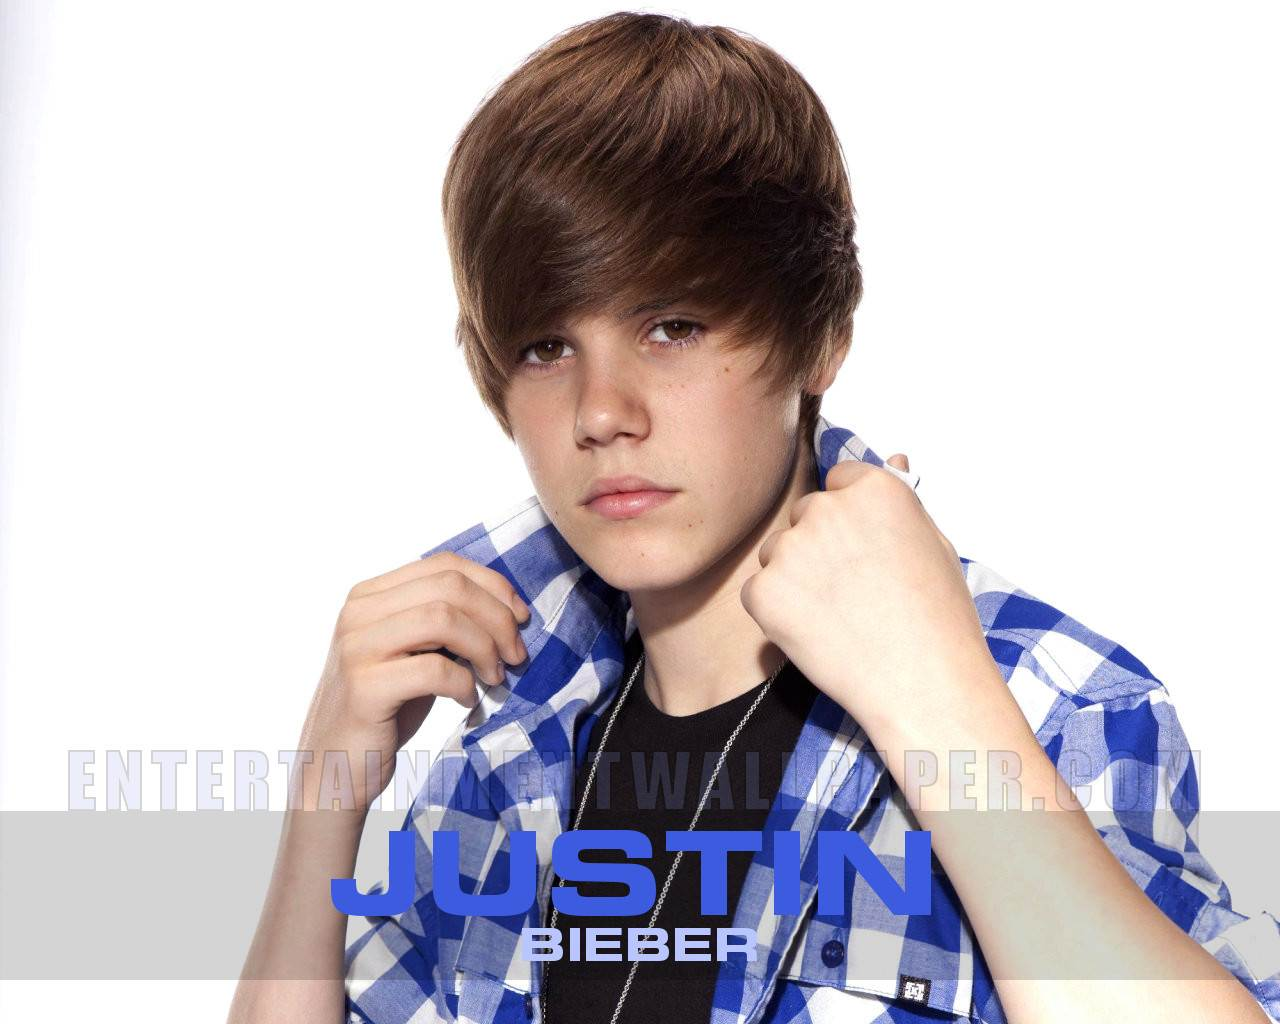 justin bieber record in 20 giorni | Optimagazine – webzine di Optima ...